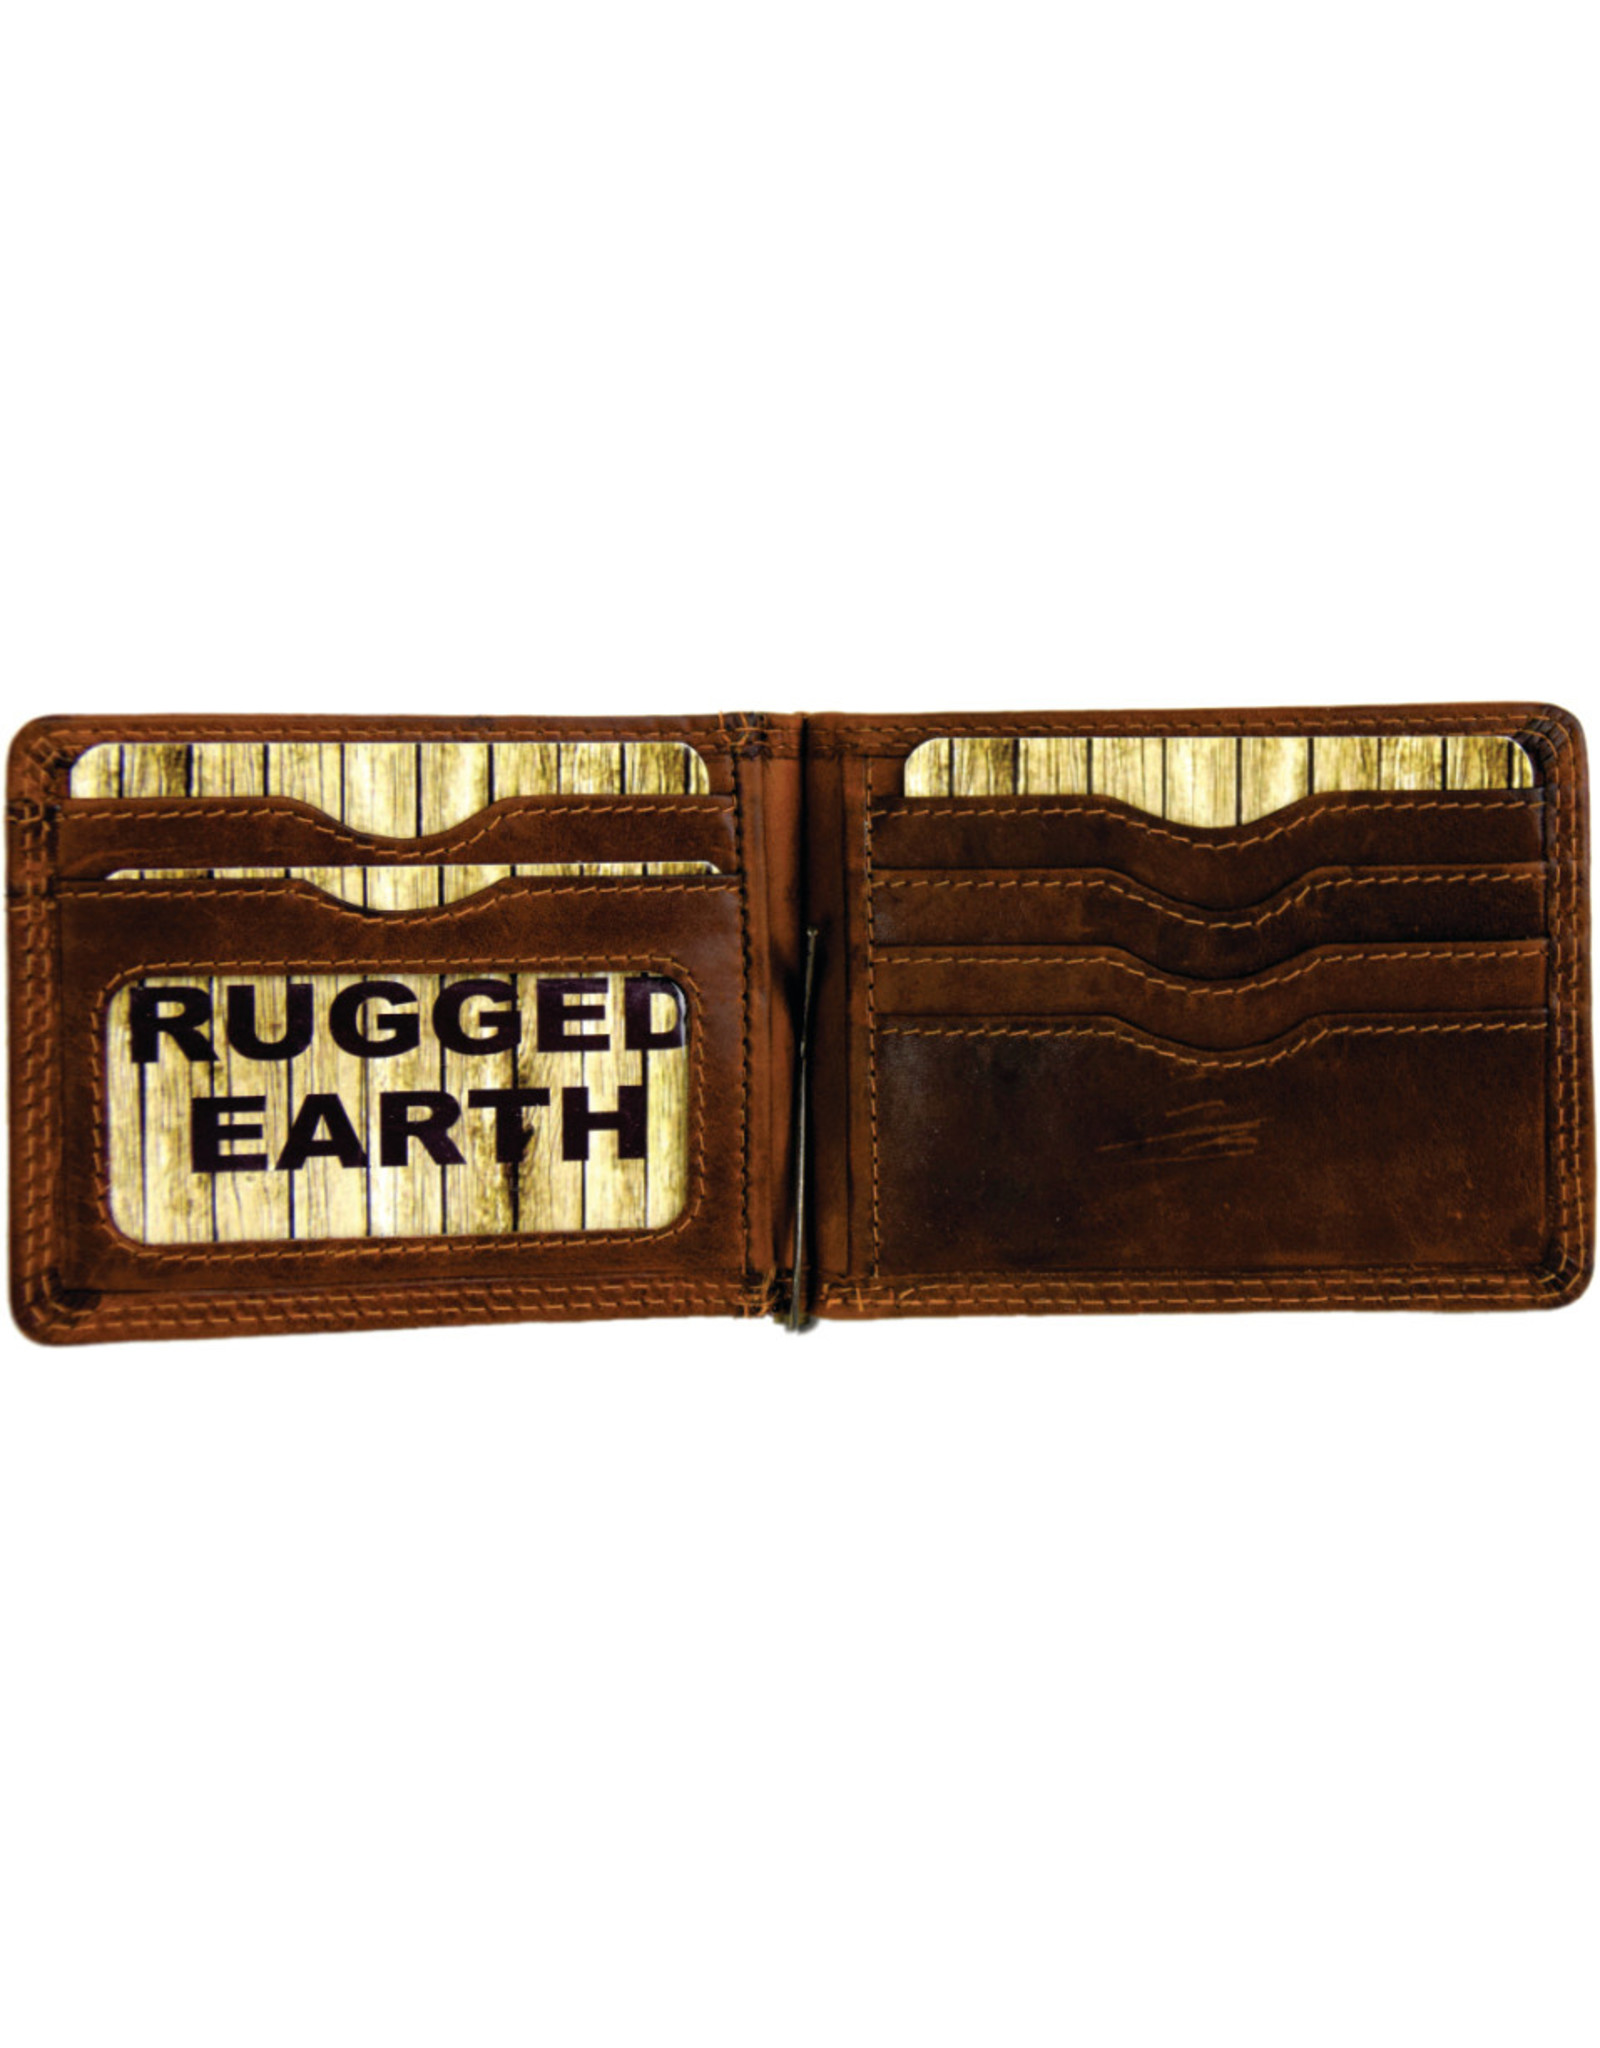 """Rugged Earth Rugged Earth  Money Clip Wallet 990018 Brown W 4.5""""H 3.25""""*D 3/8"""""""